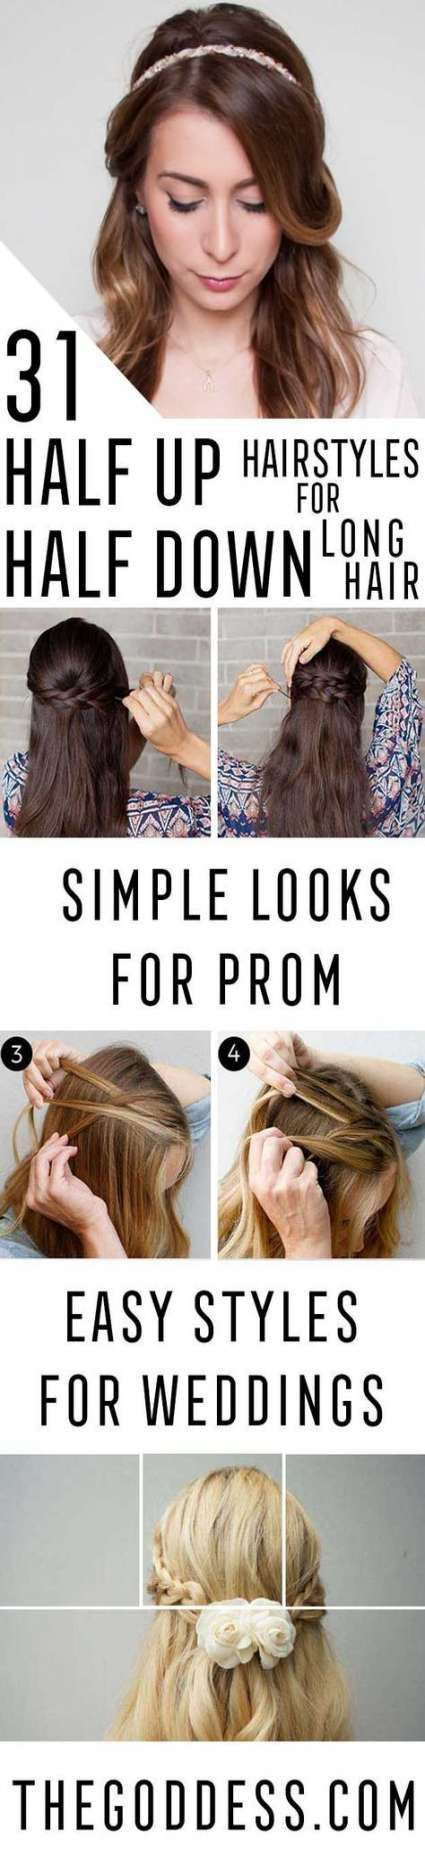 38+ New Ideas Wedding Hairstyles Half Up Half Down With Bangs Prom – #bangs #hai…